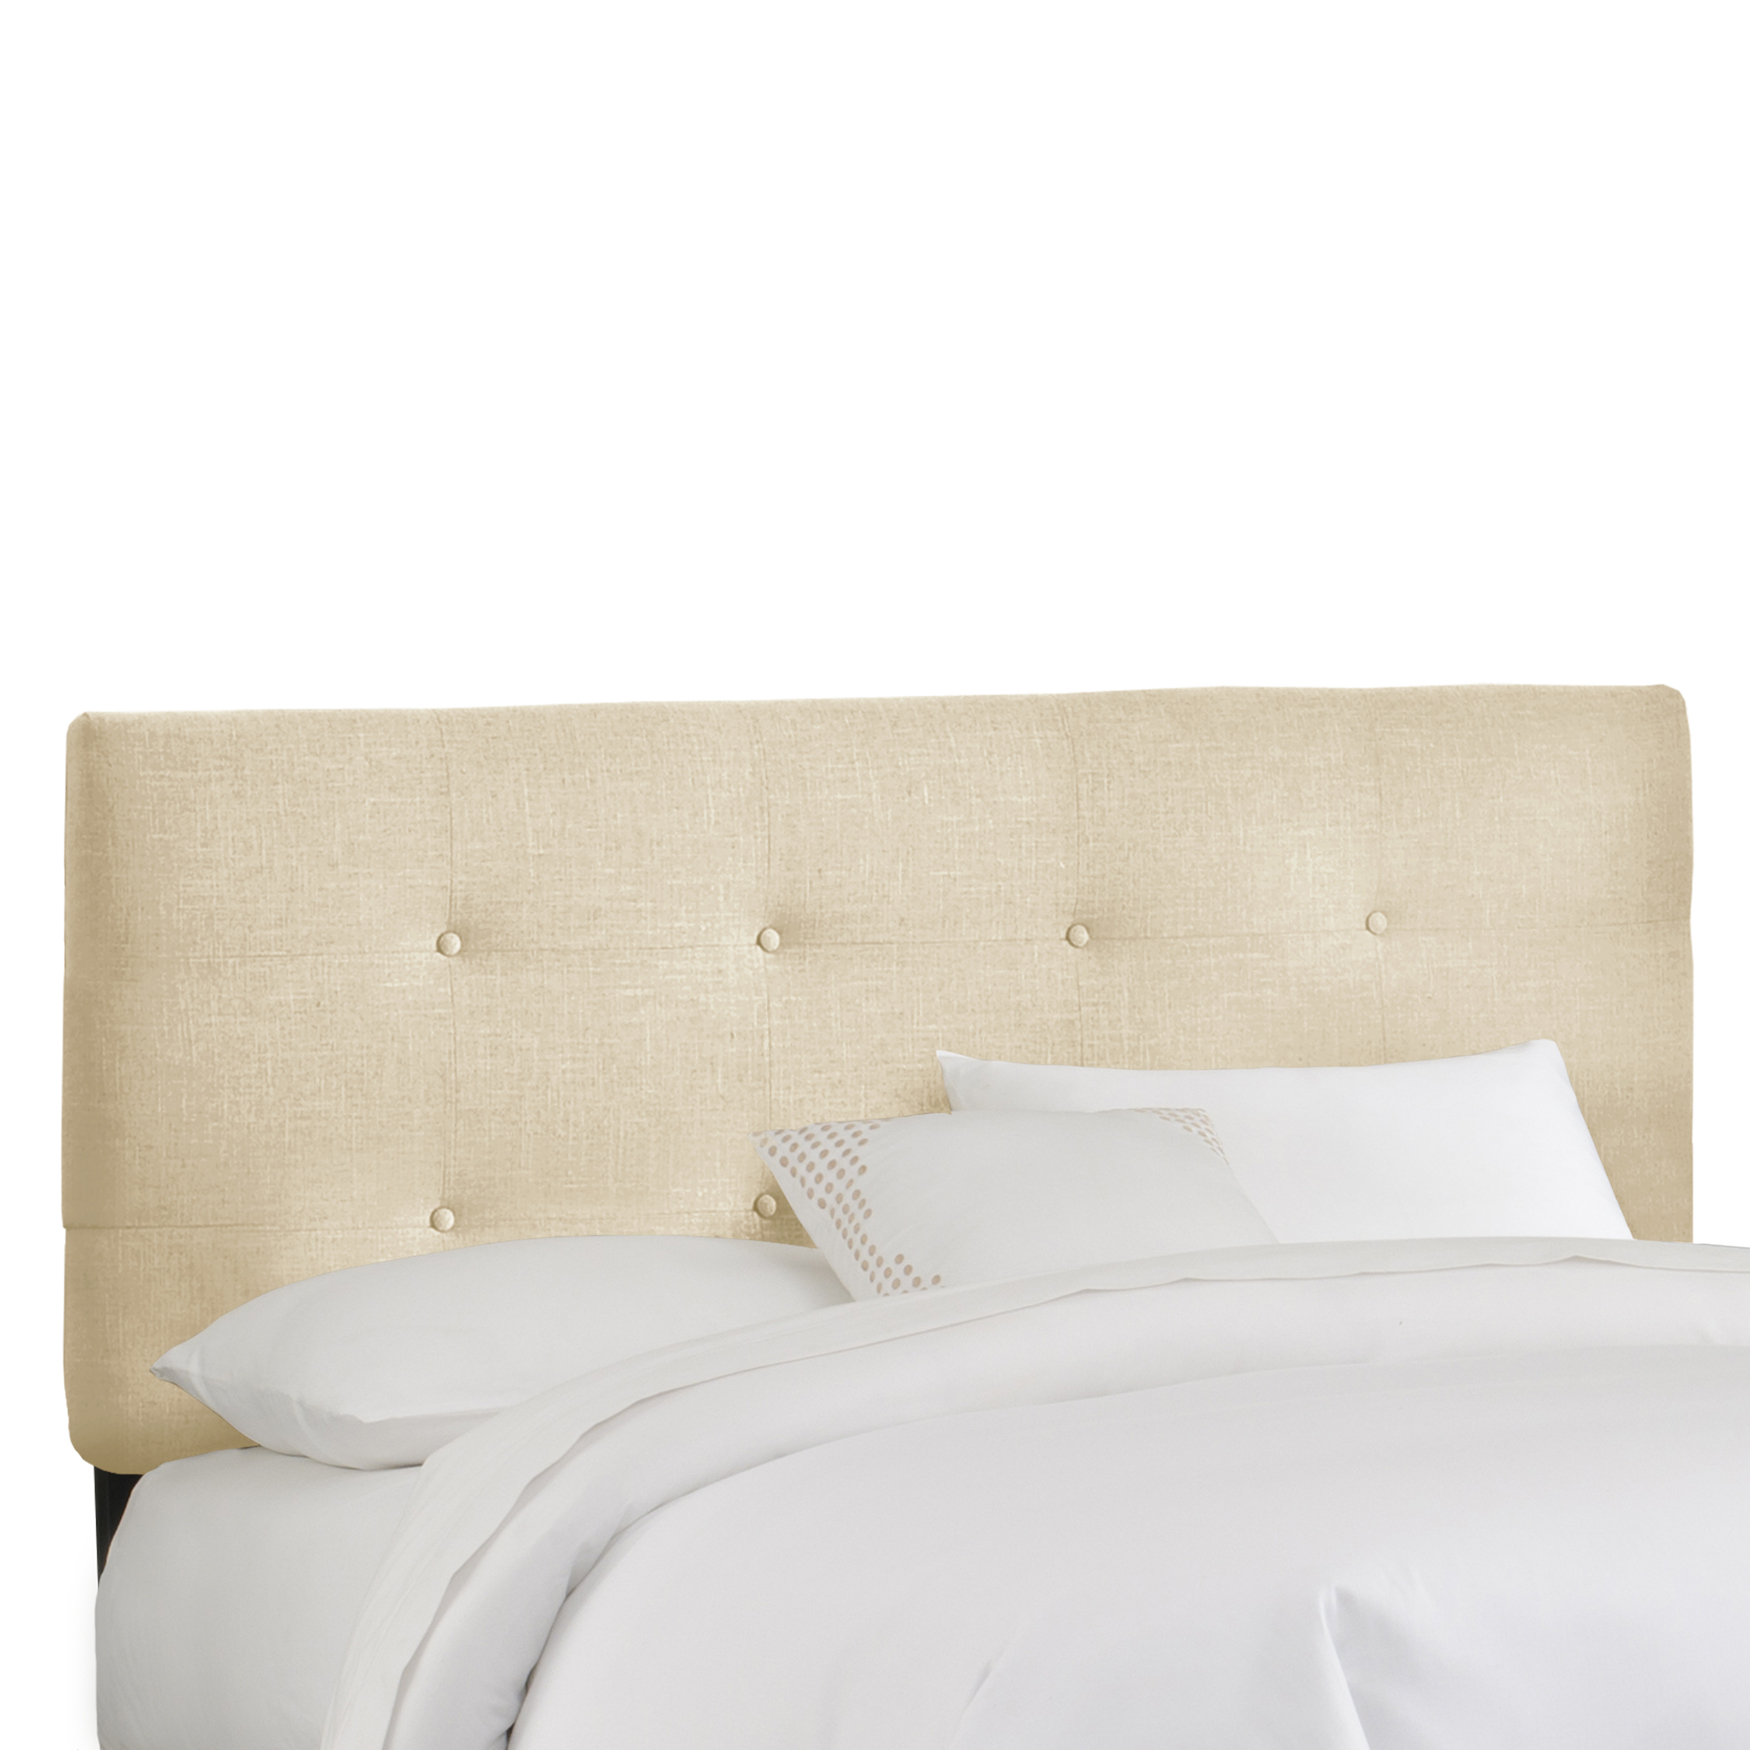 Roscoe Tufted Headboard,